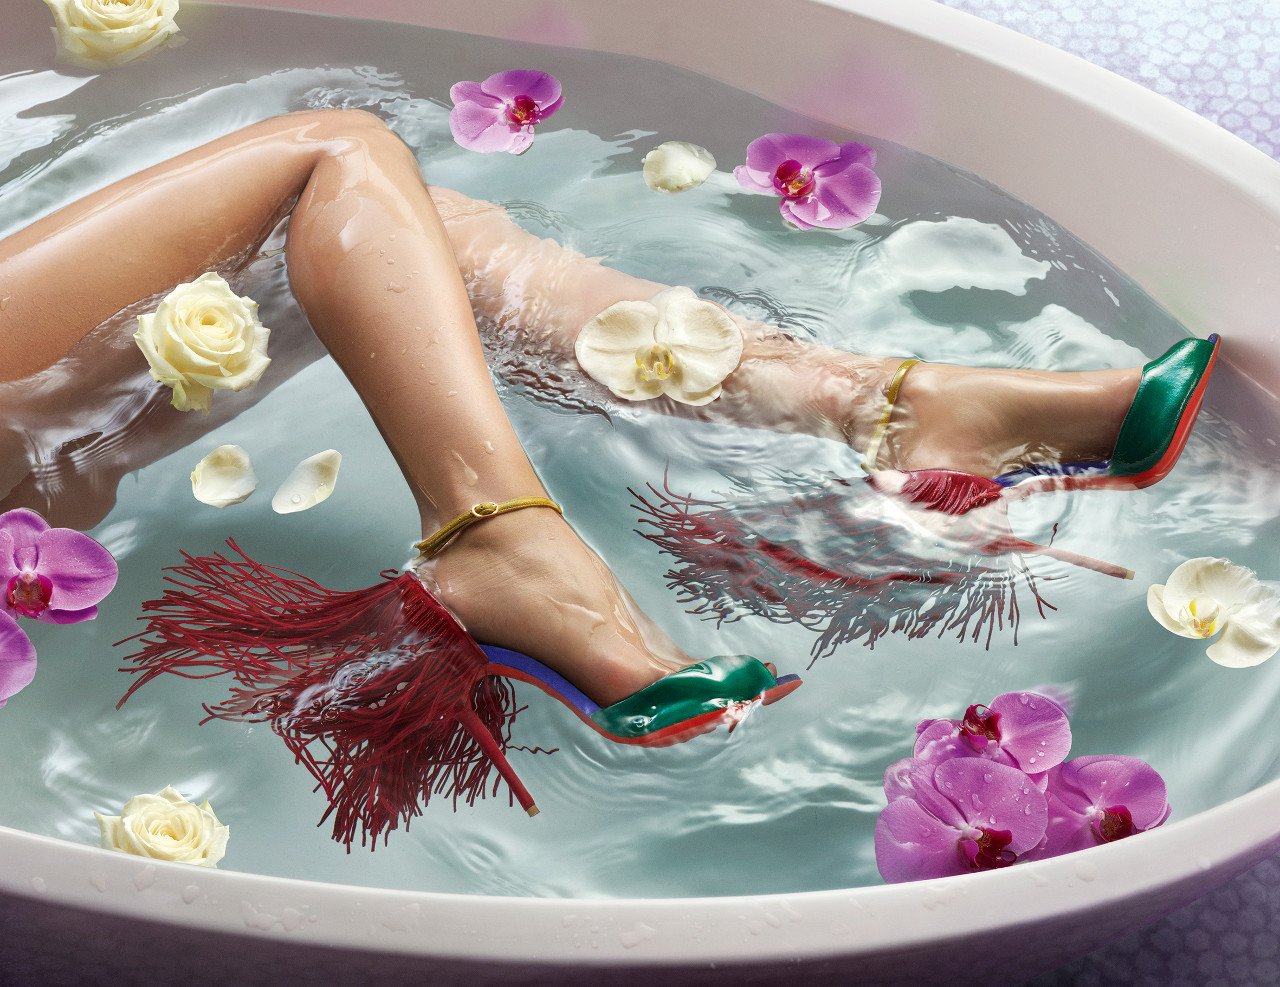 Christian Louboutin Shoes Spring 2015 Campaign forecast